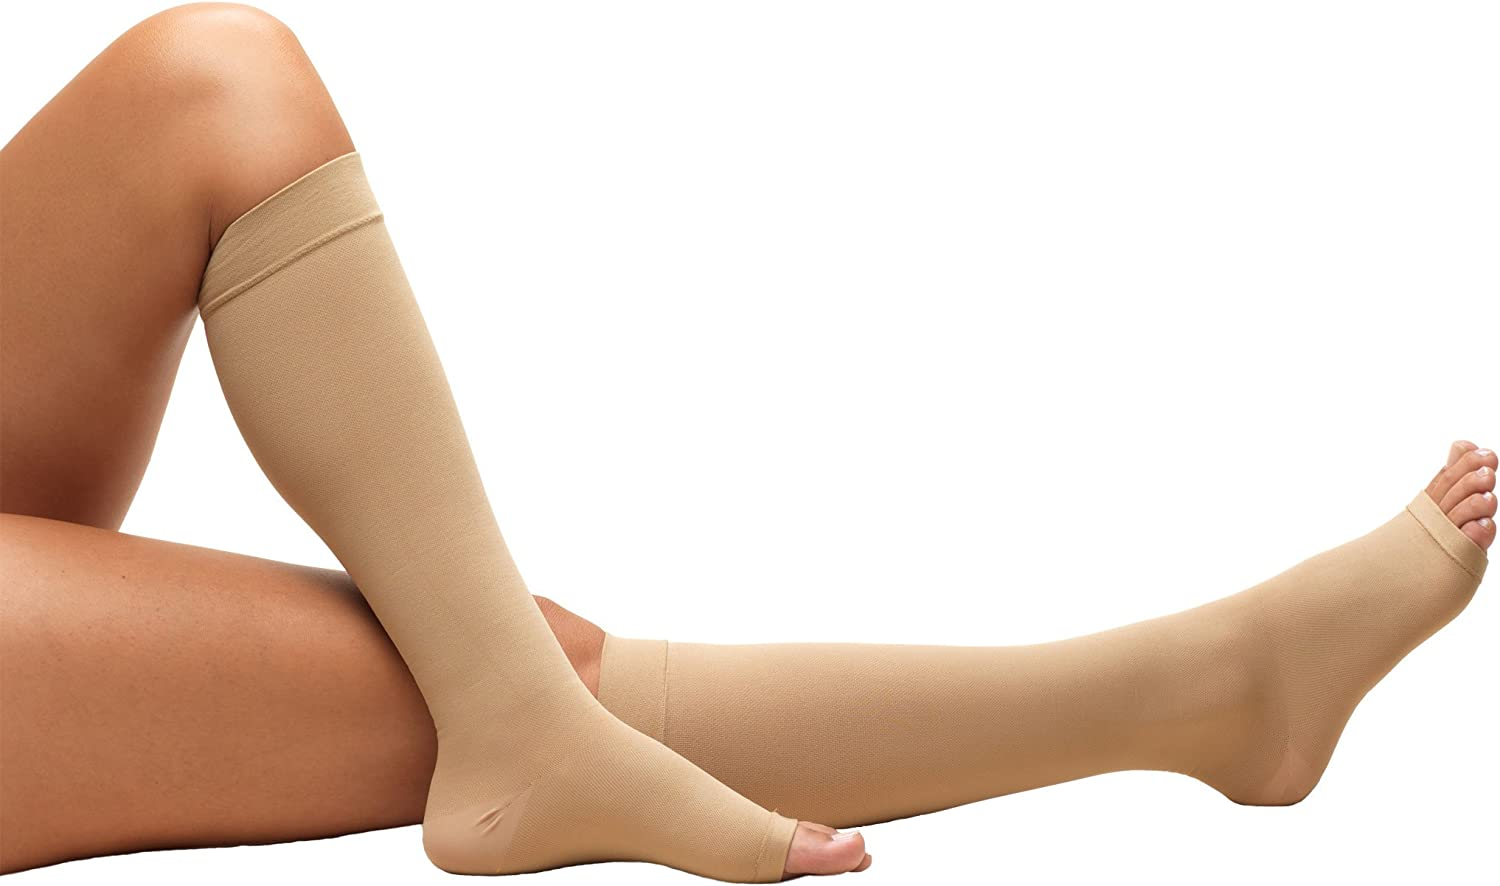 Truform Short Length Surgical Stockings, 18 mmHg Compression for Men and Women, Reduced Length, Open Toe, Beige, Large